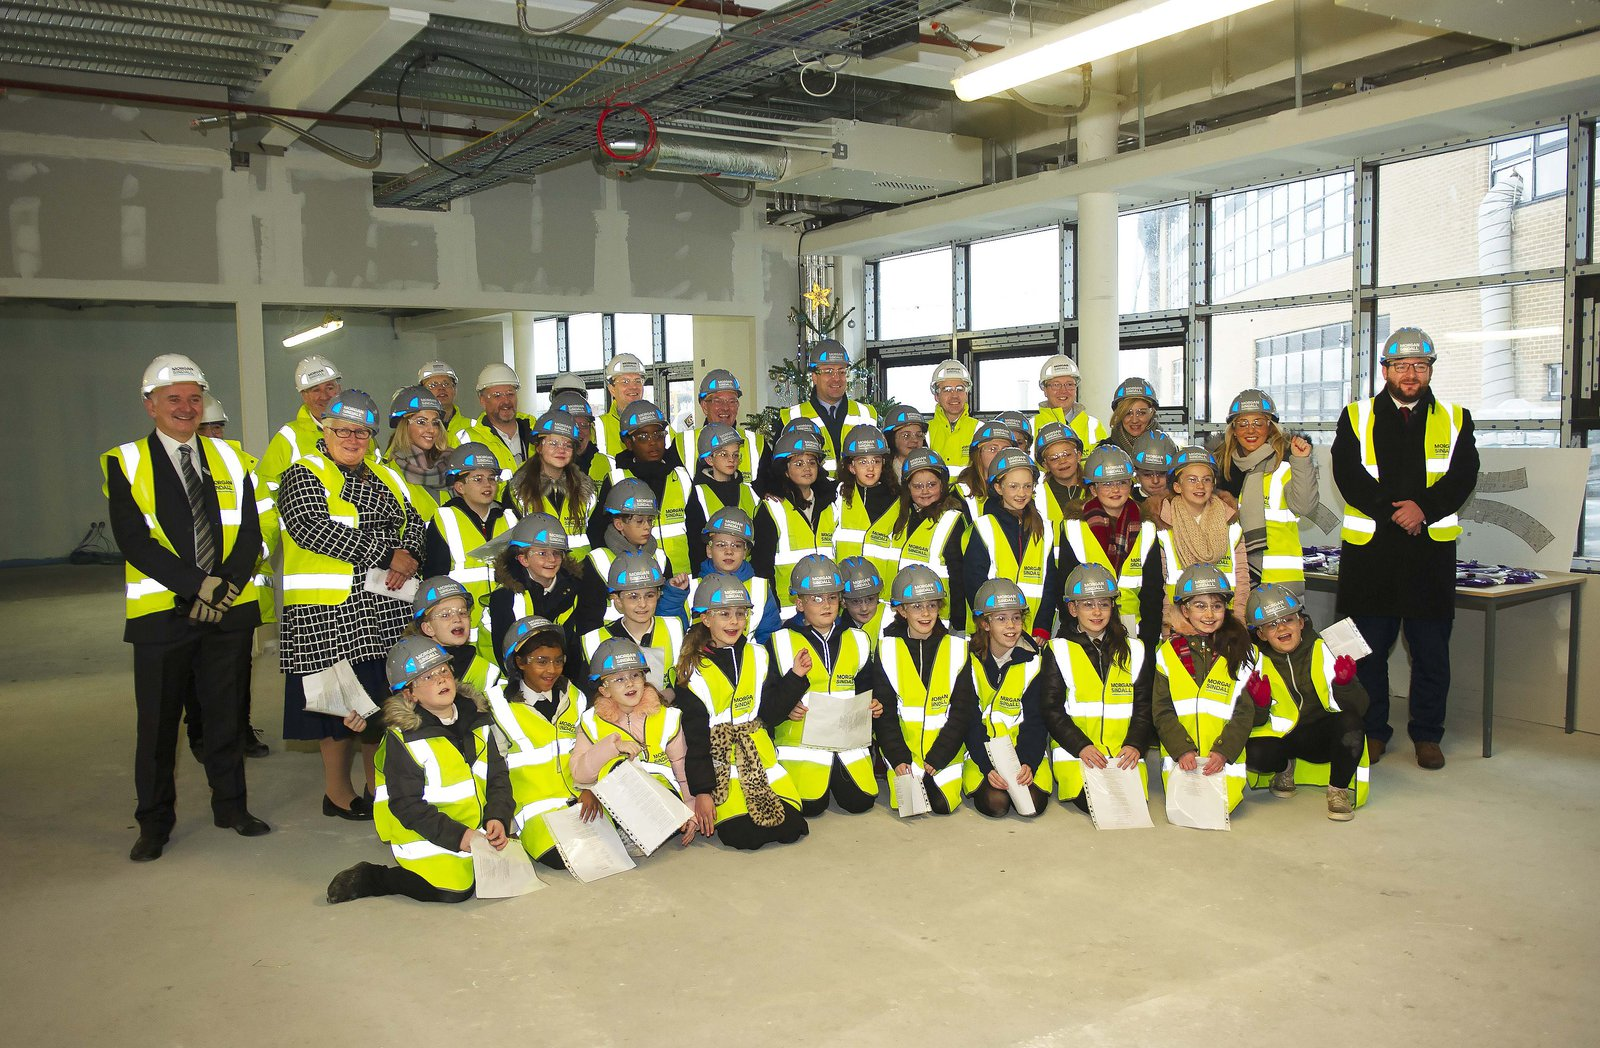 Morgan Sindall Construction and stakeholders at school tour event